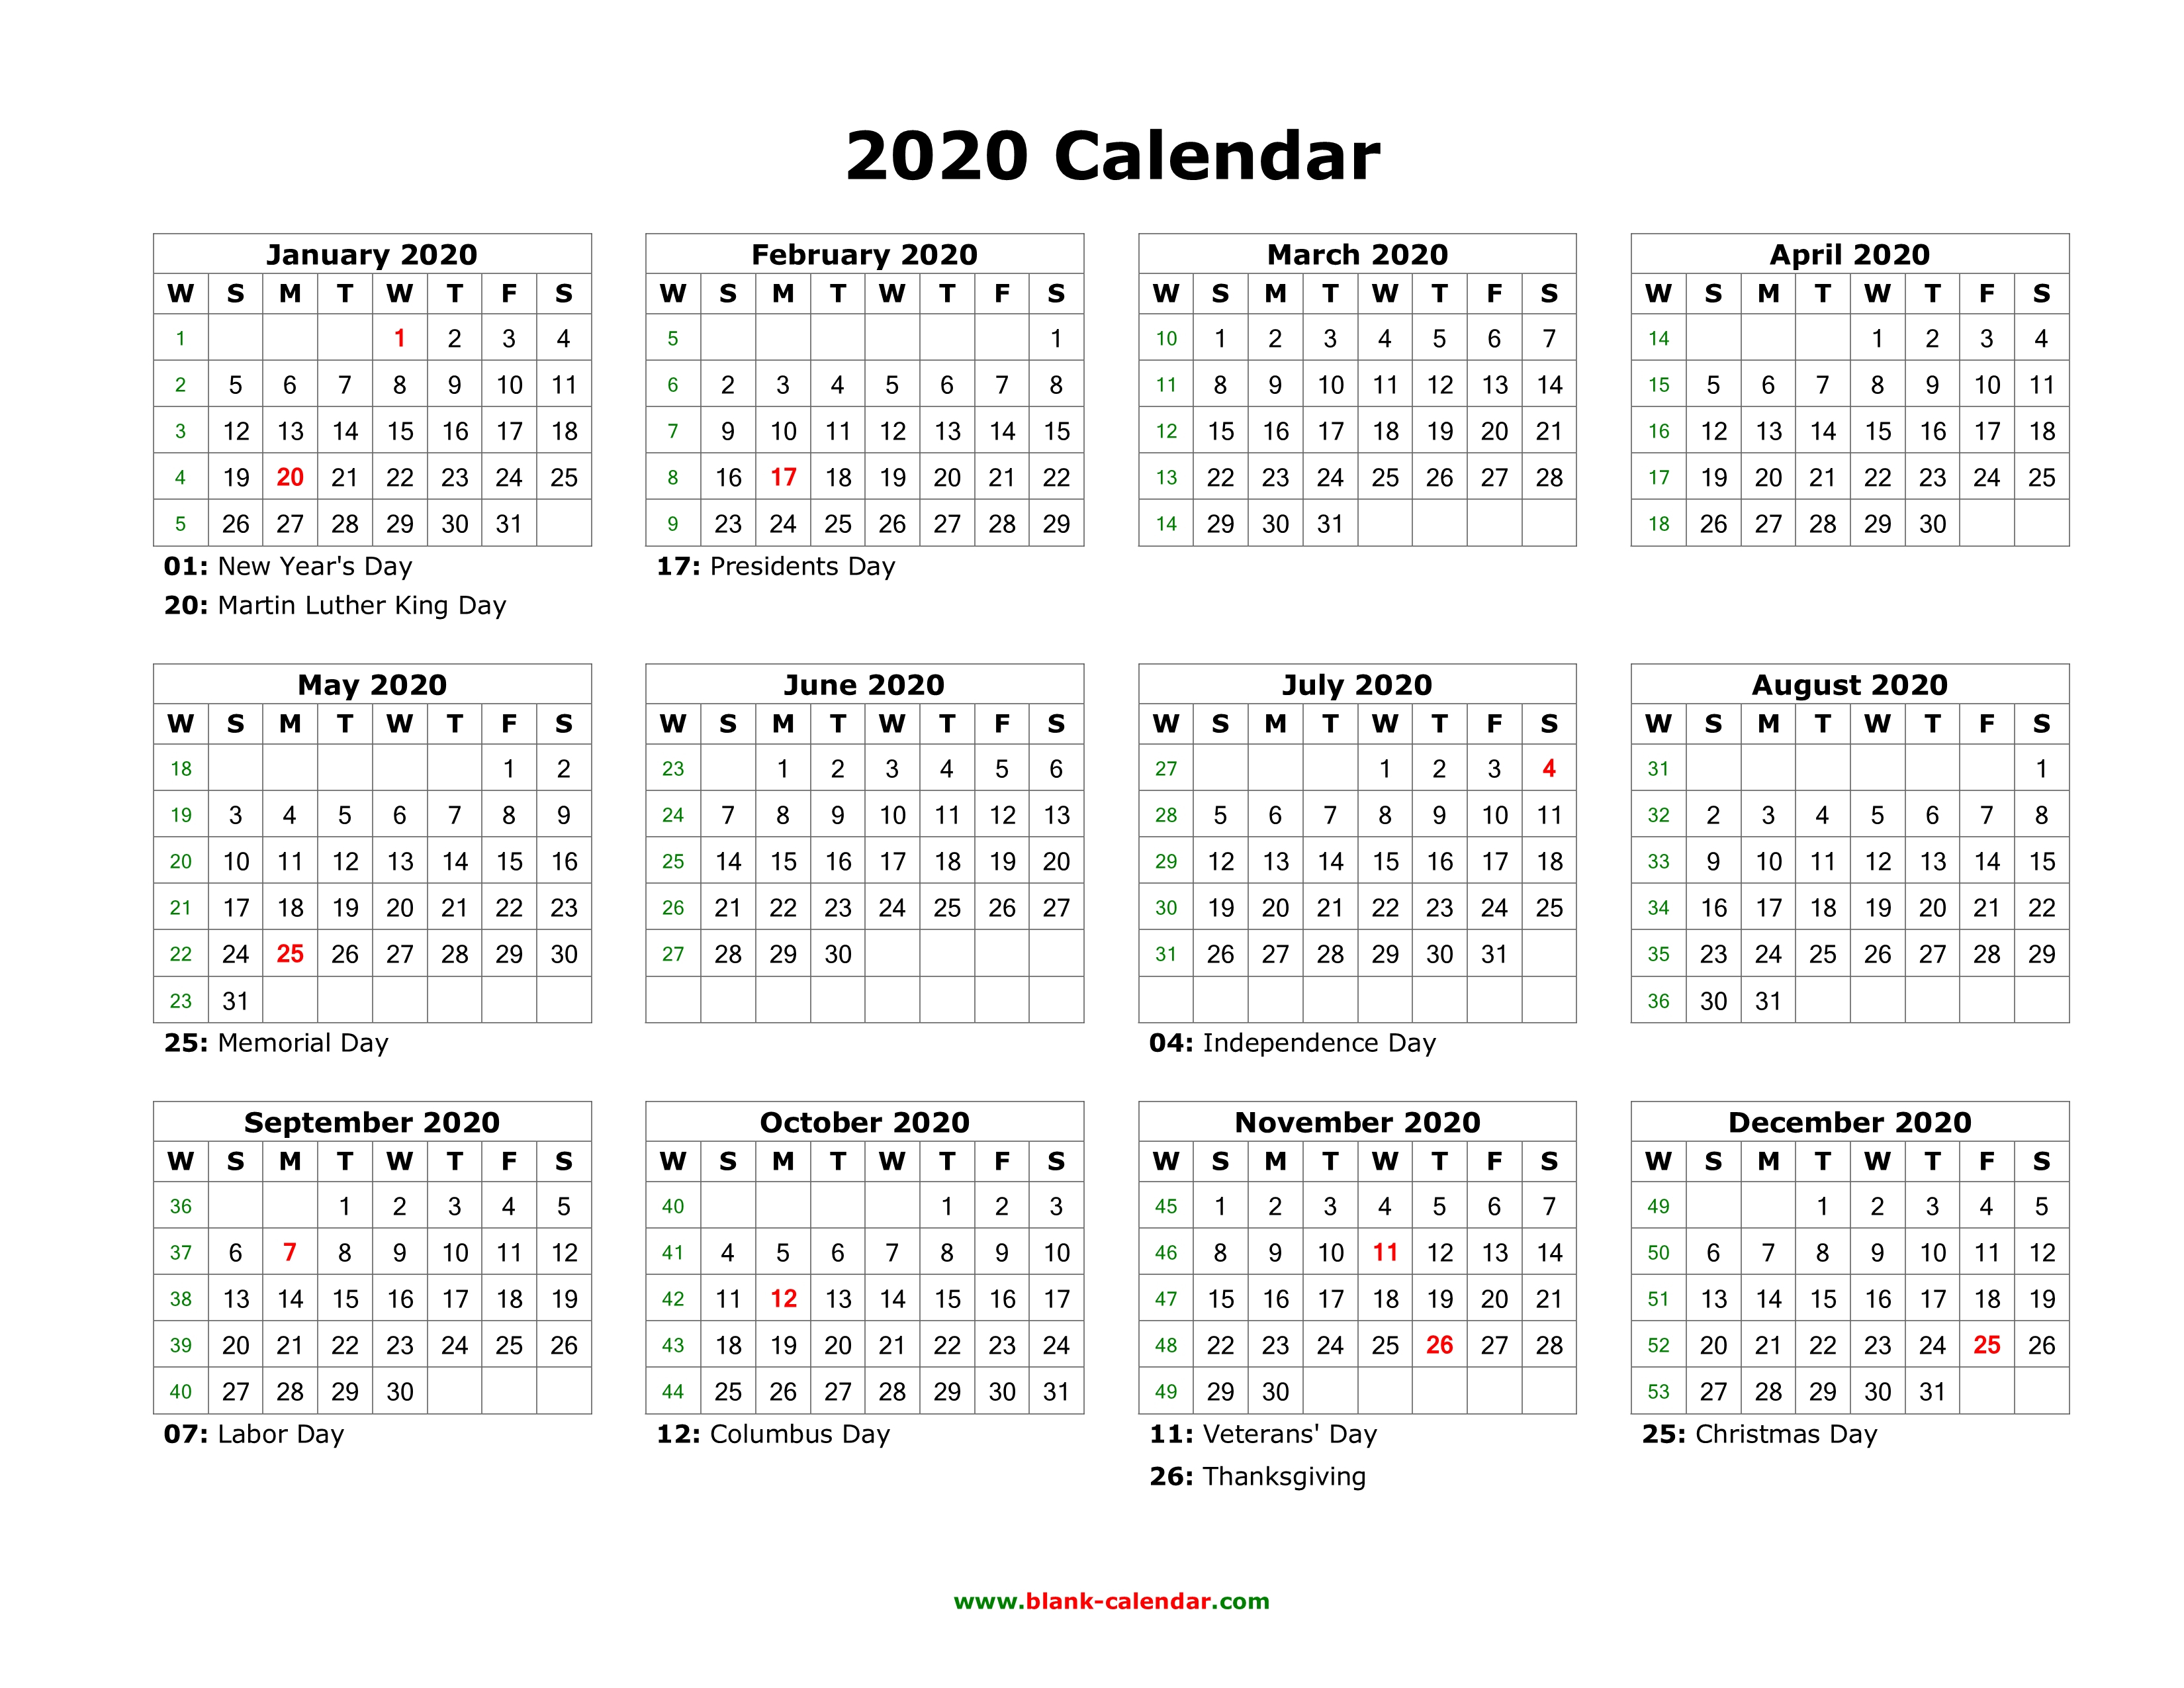 Blank Calendar 2020 | Free Download Calendar Templates within Printable 2020 Calendars No Download